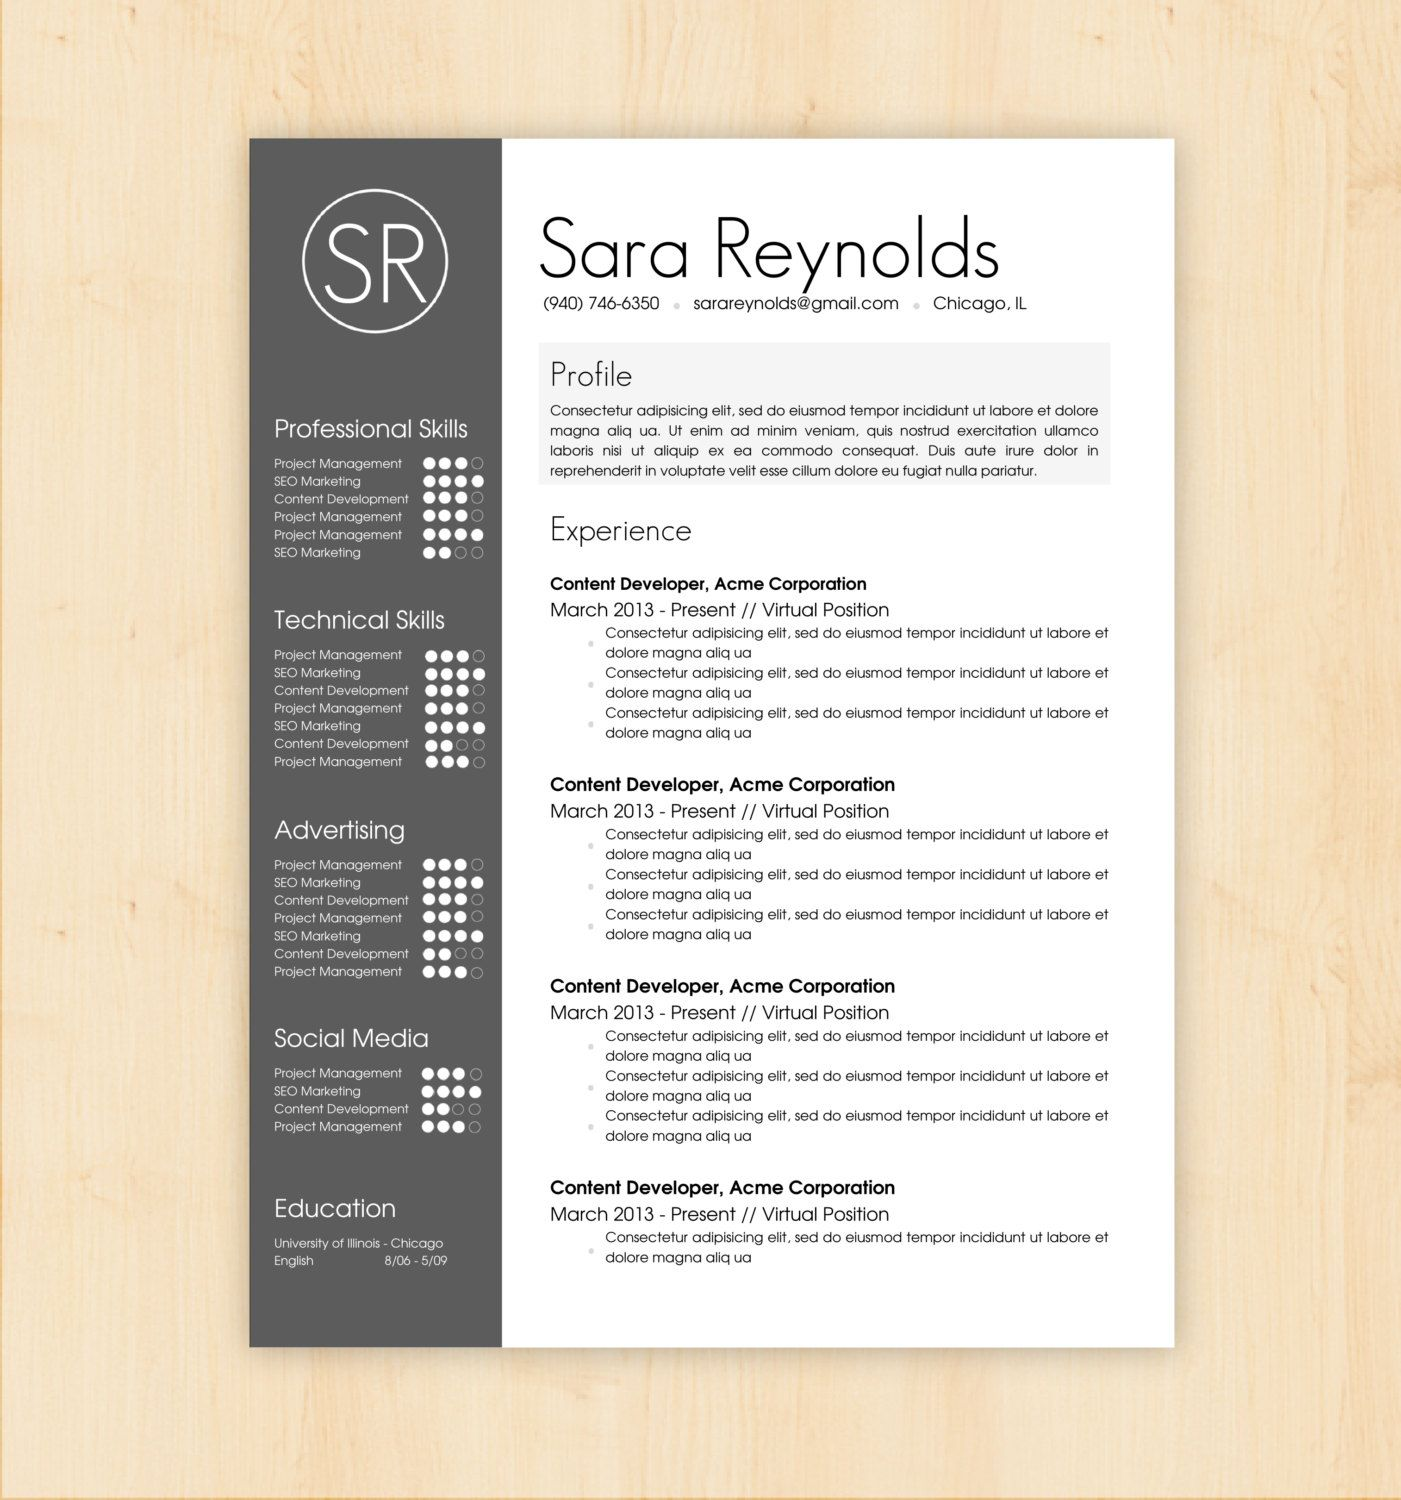 resume template cover letter template cv template wbusiness card template modern resume w skills word document template a4 us letter - Resume Template Design